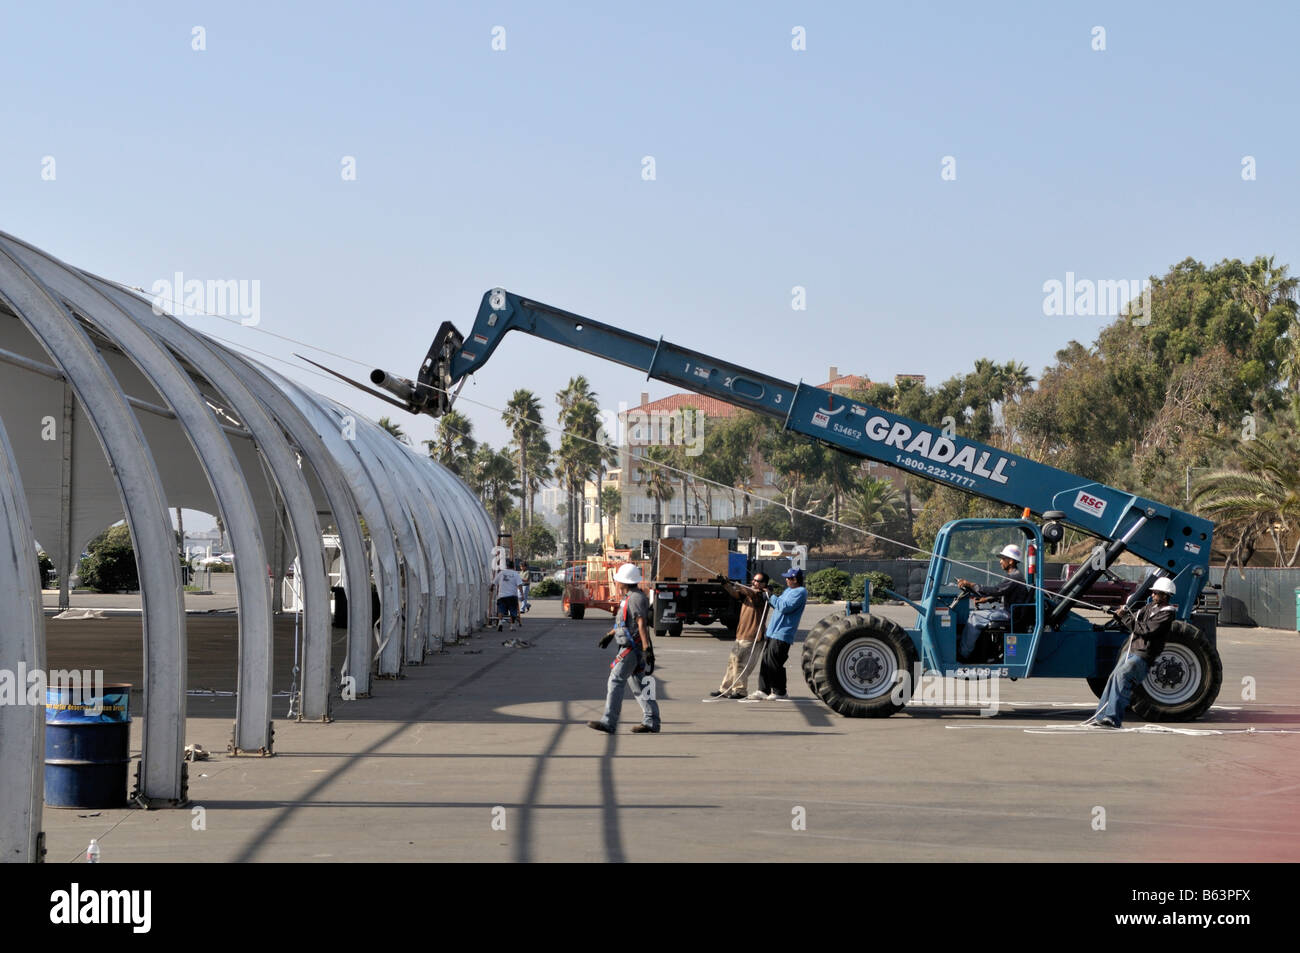 A very large tent structure is being raised at a parking lot on the Santa Monica Beach & A very large tent structure is being raised at a parking lot on ...